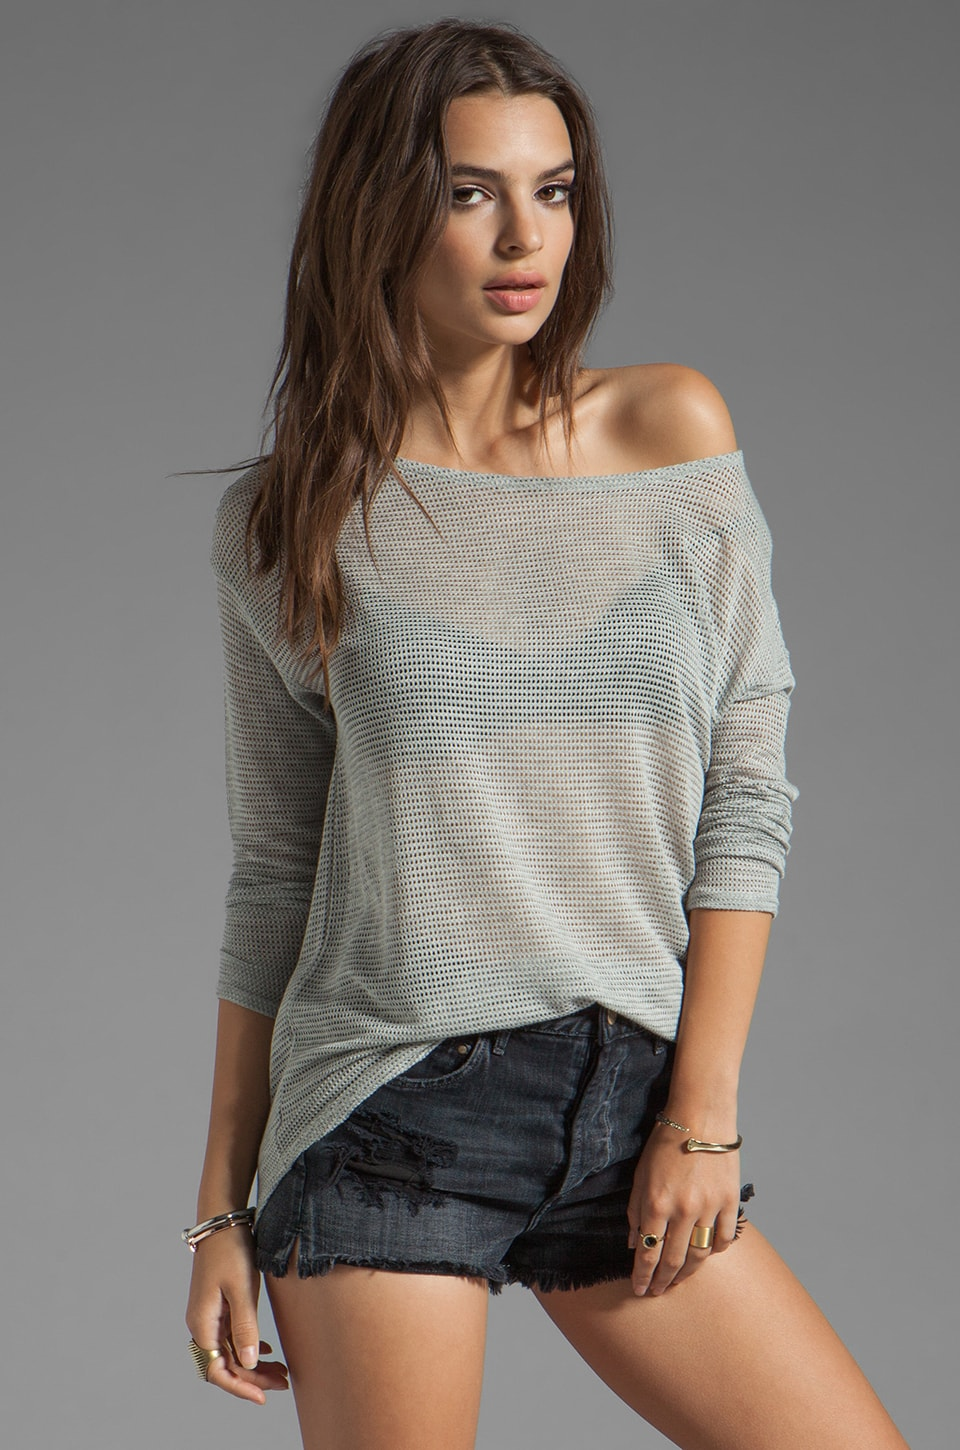 Soft Joie Benton Mesh Top in Heather Grey